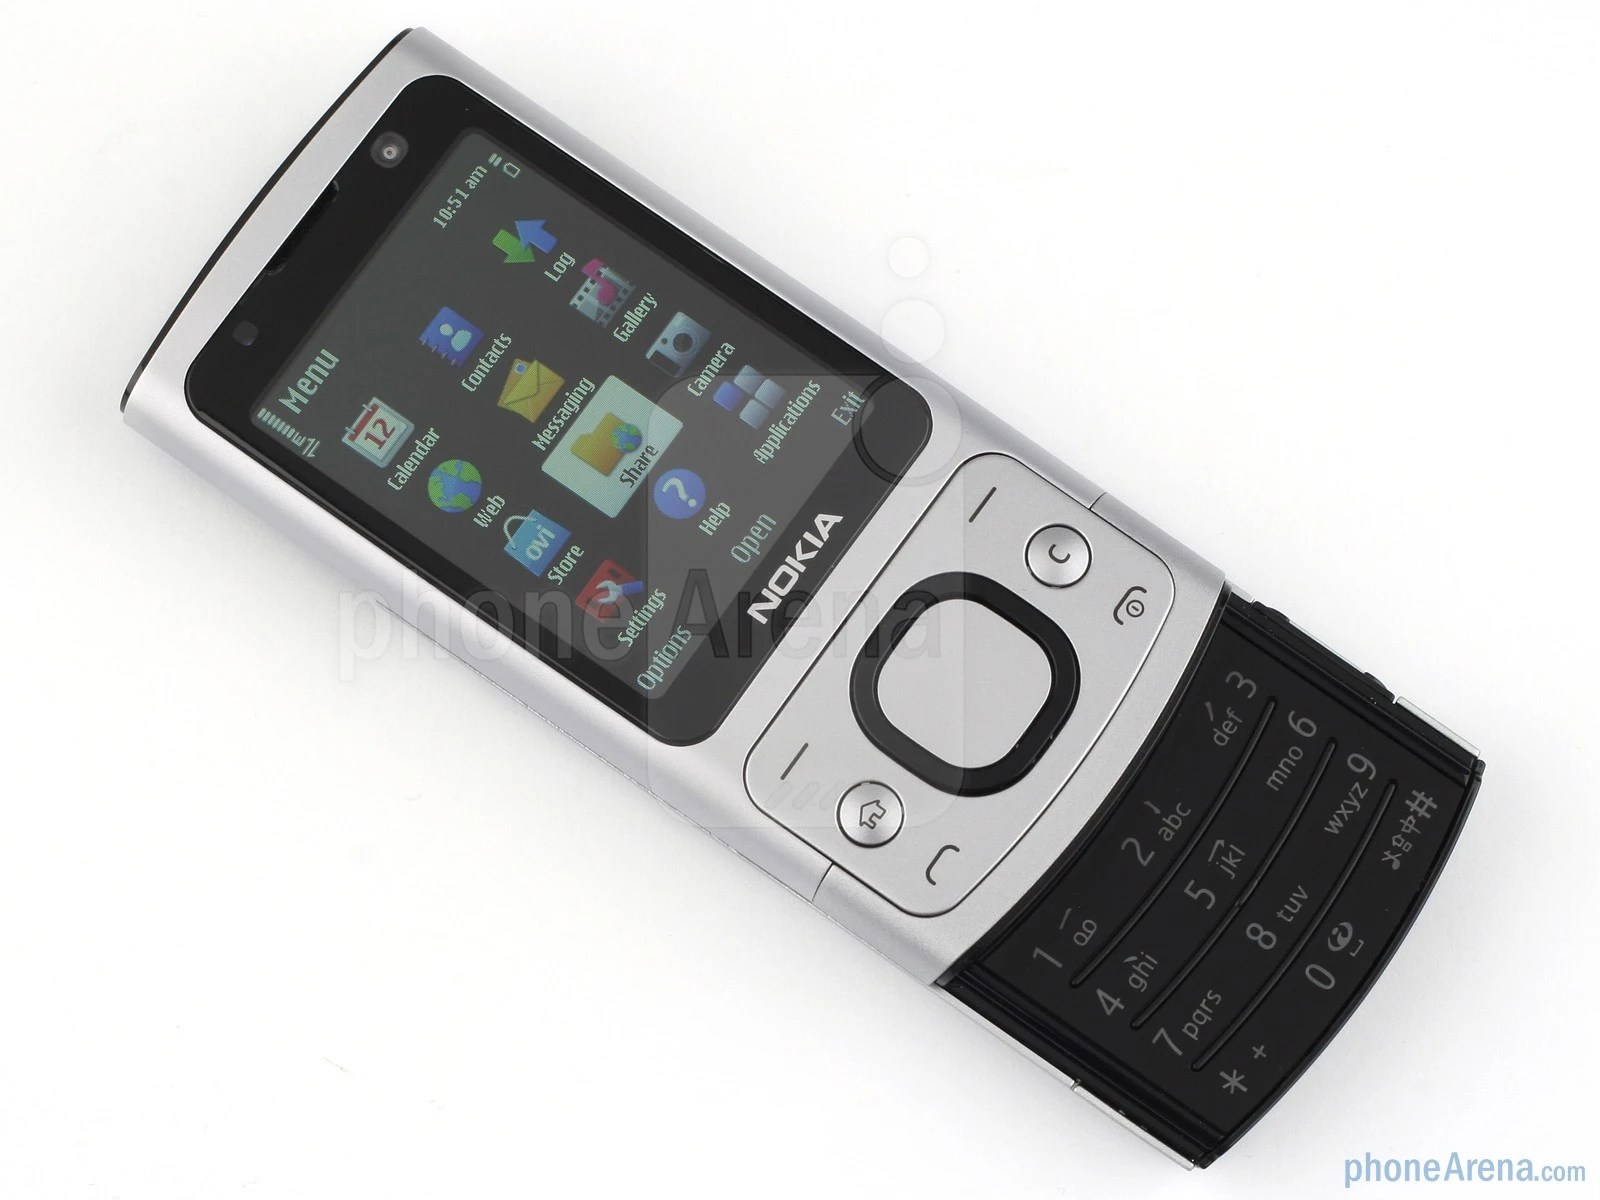 Nokia 6700 Slide Review Performance And Conclusion